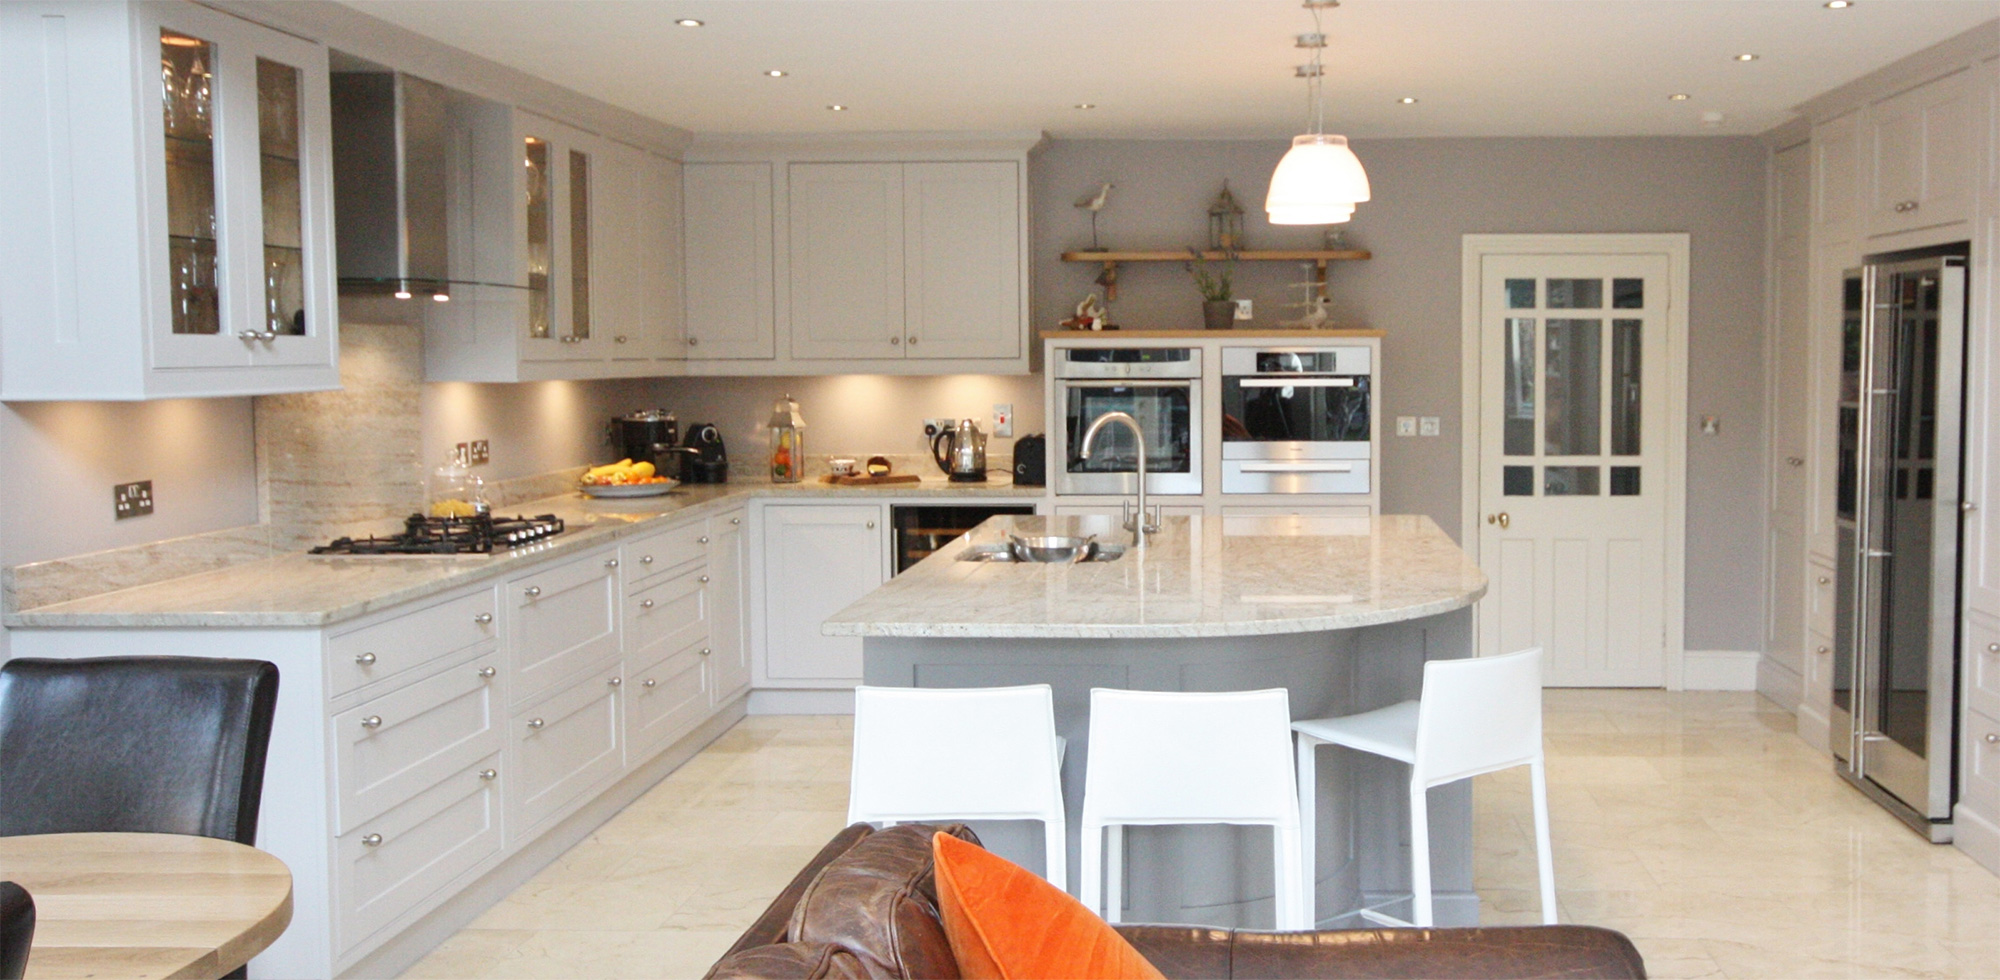 Enigma design lipizzaner grey kitchen design wicklow - Grey kitchen design pictures ...